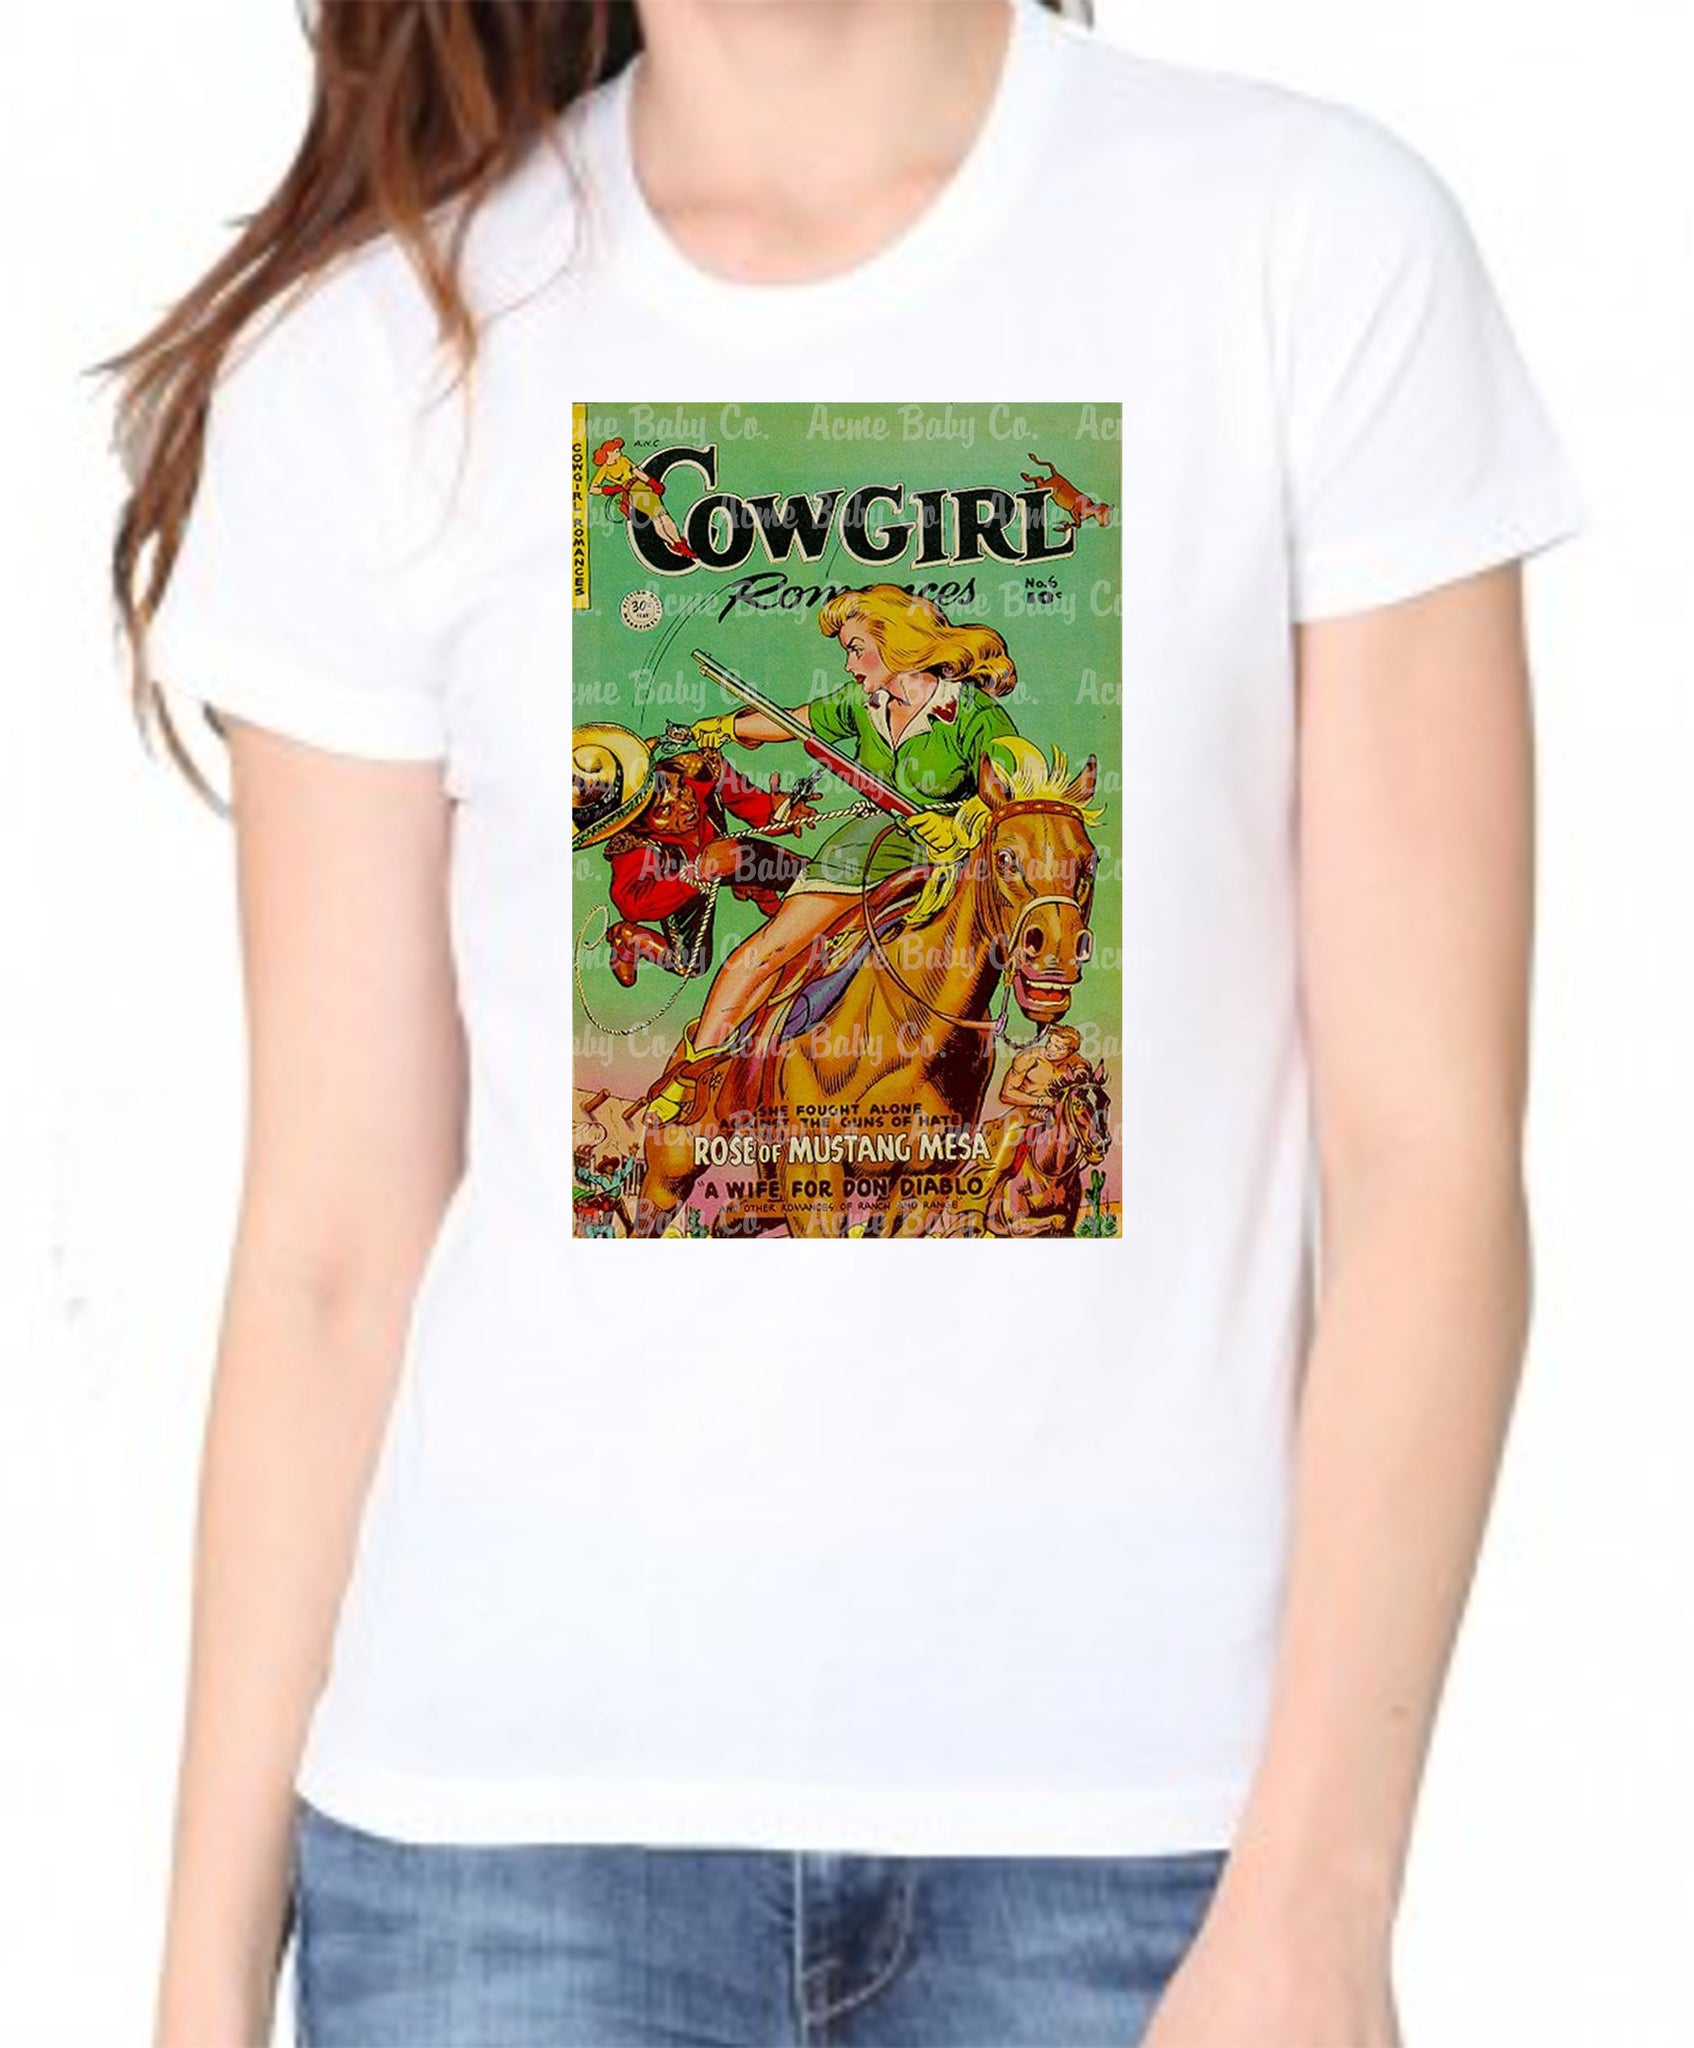 Cowgirl Romances Women's Organic Shirt